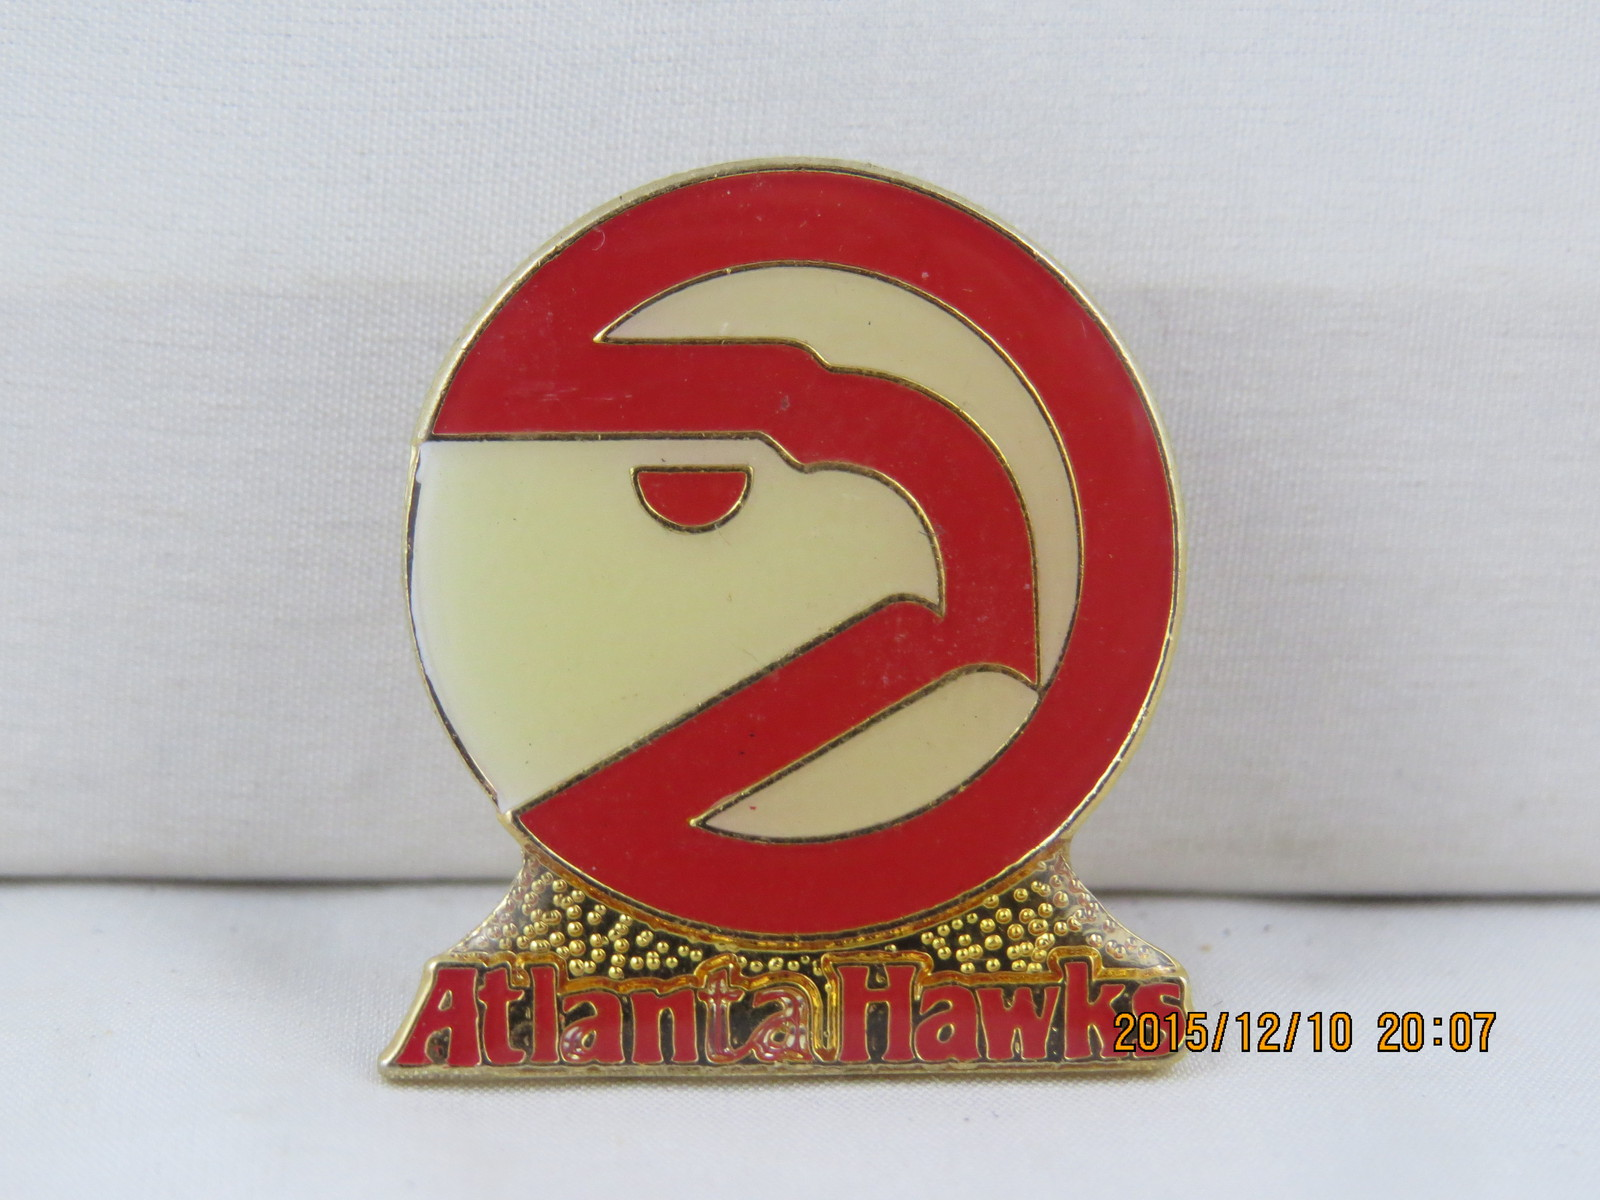 Primary image for Retro Atlanta Hawks Pin - Featuring the Team's 1980's logo !!!